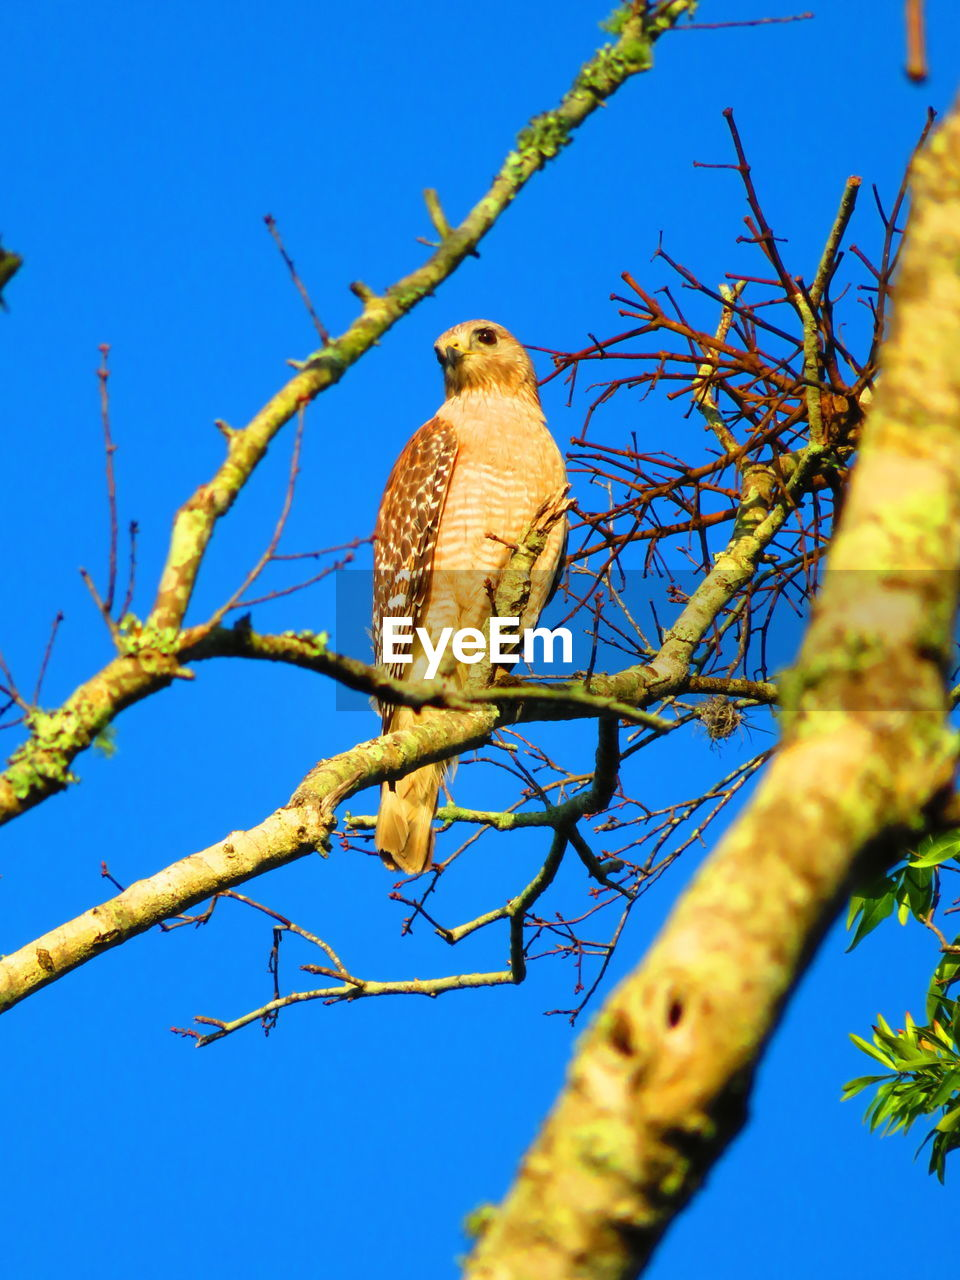 plant, animal, animal themes, low angle view, perching, tree, animals in the wild, animal wildlife, branch, vertebrate, one animal, bird, sky, nature, clear sky, blue, no people, day, bird of prey, outdoors, eagle, falcon - bird